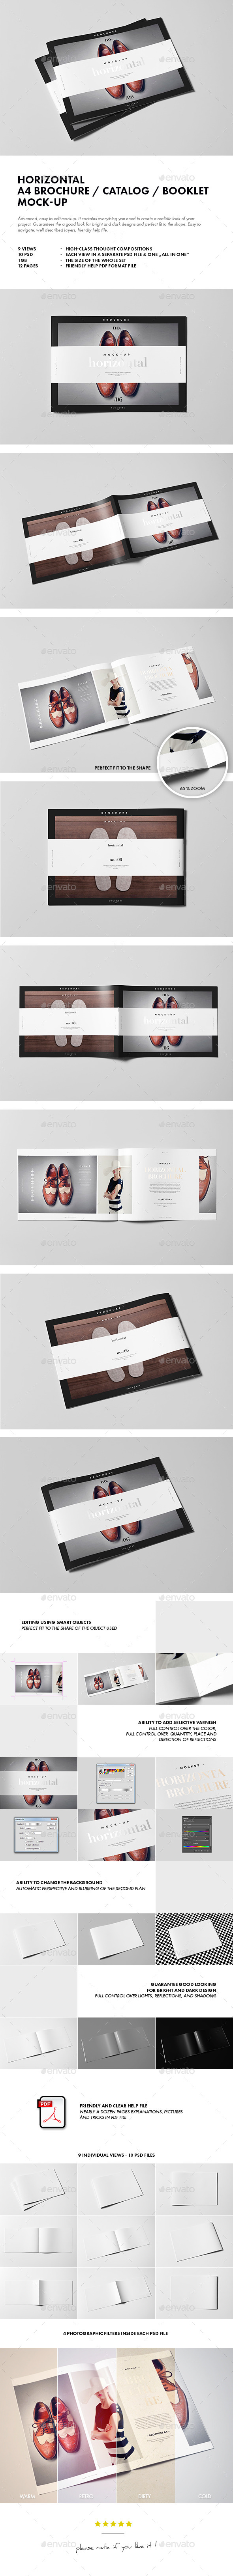 GraphicRiver Horizontal A4 Brochure Catalog Booklet Mock-up 10113385